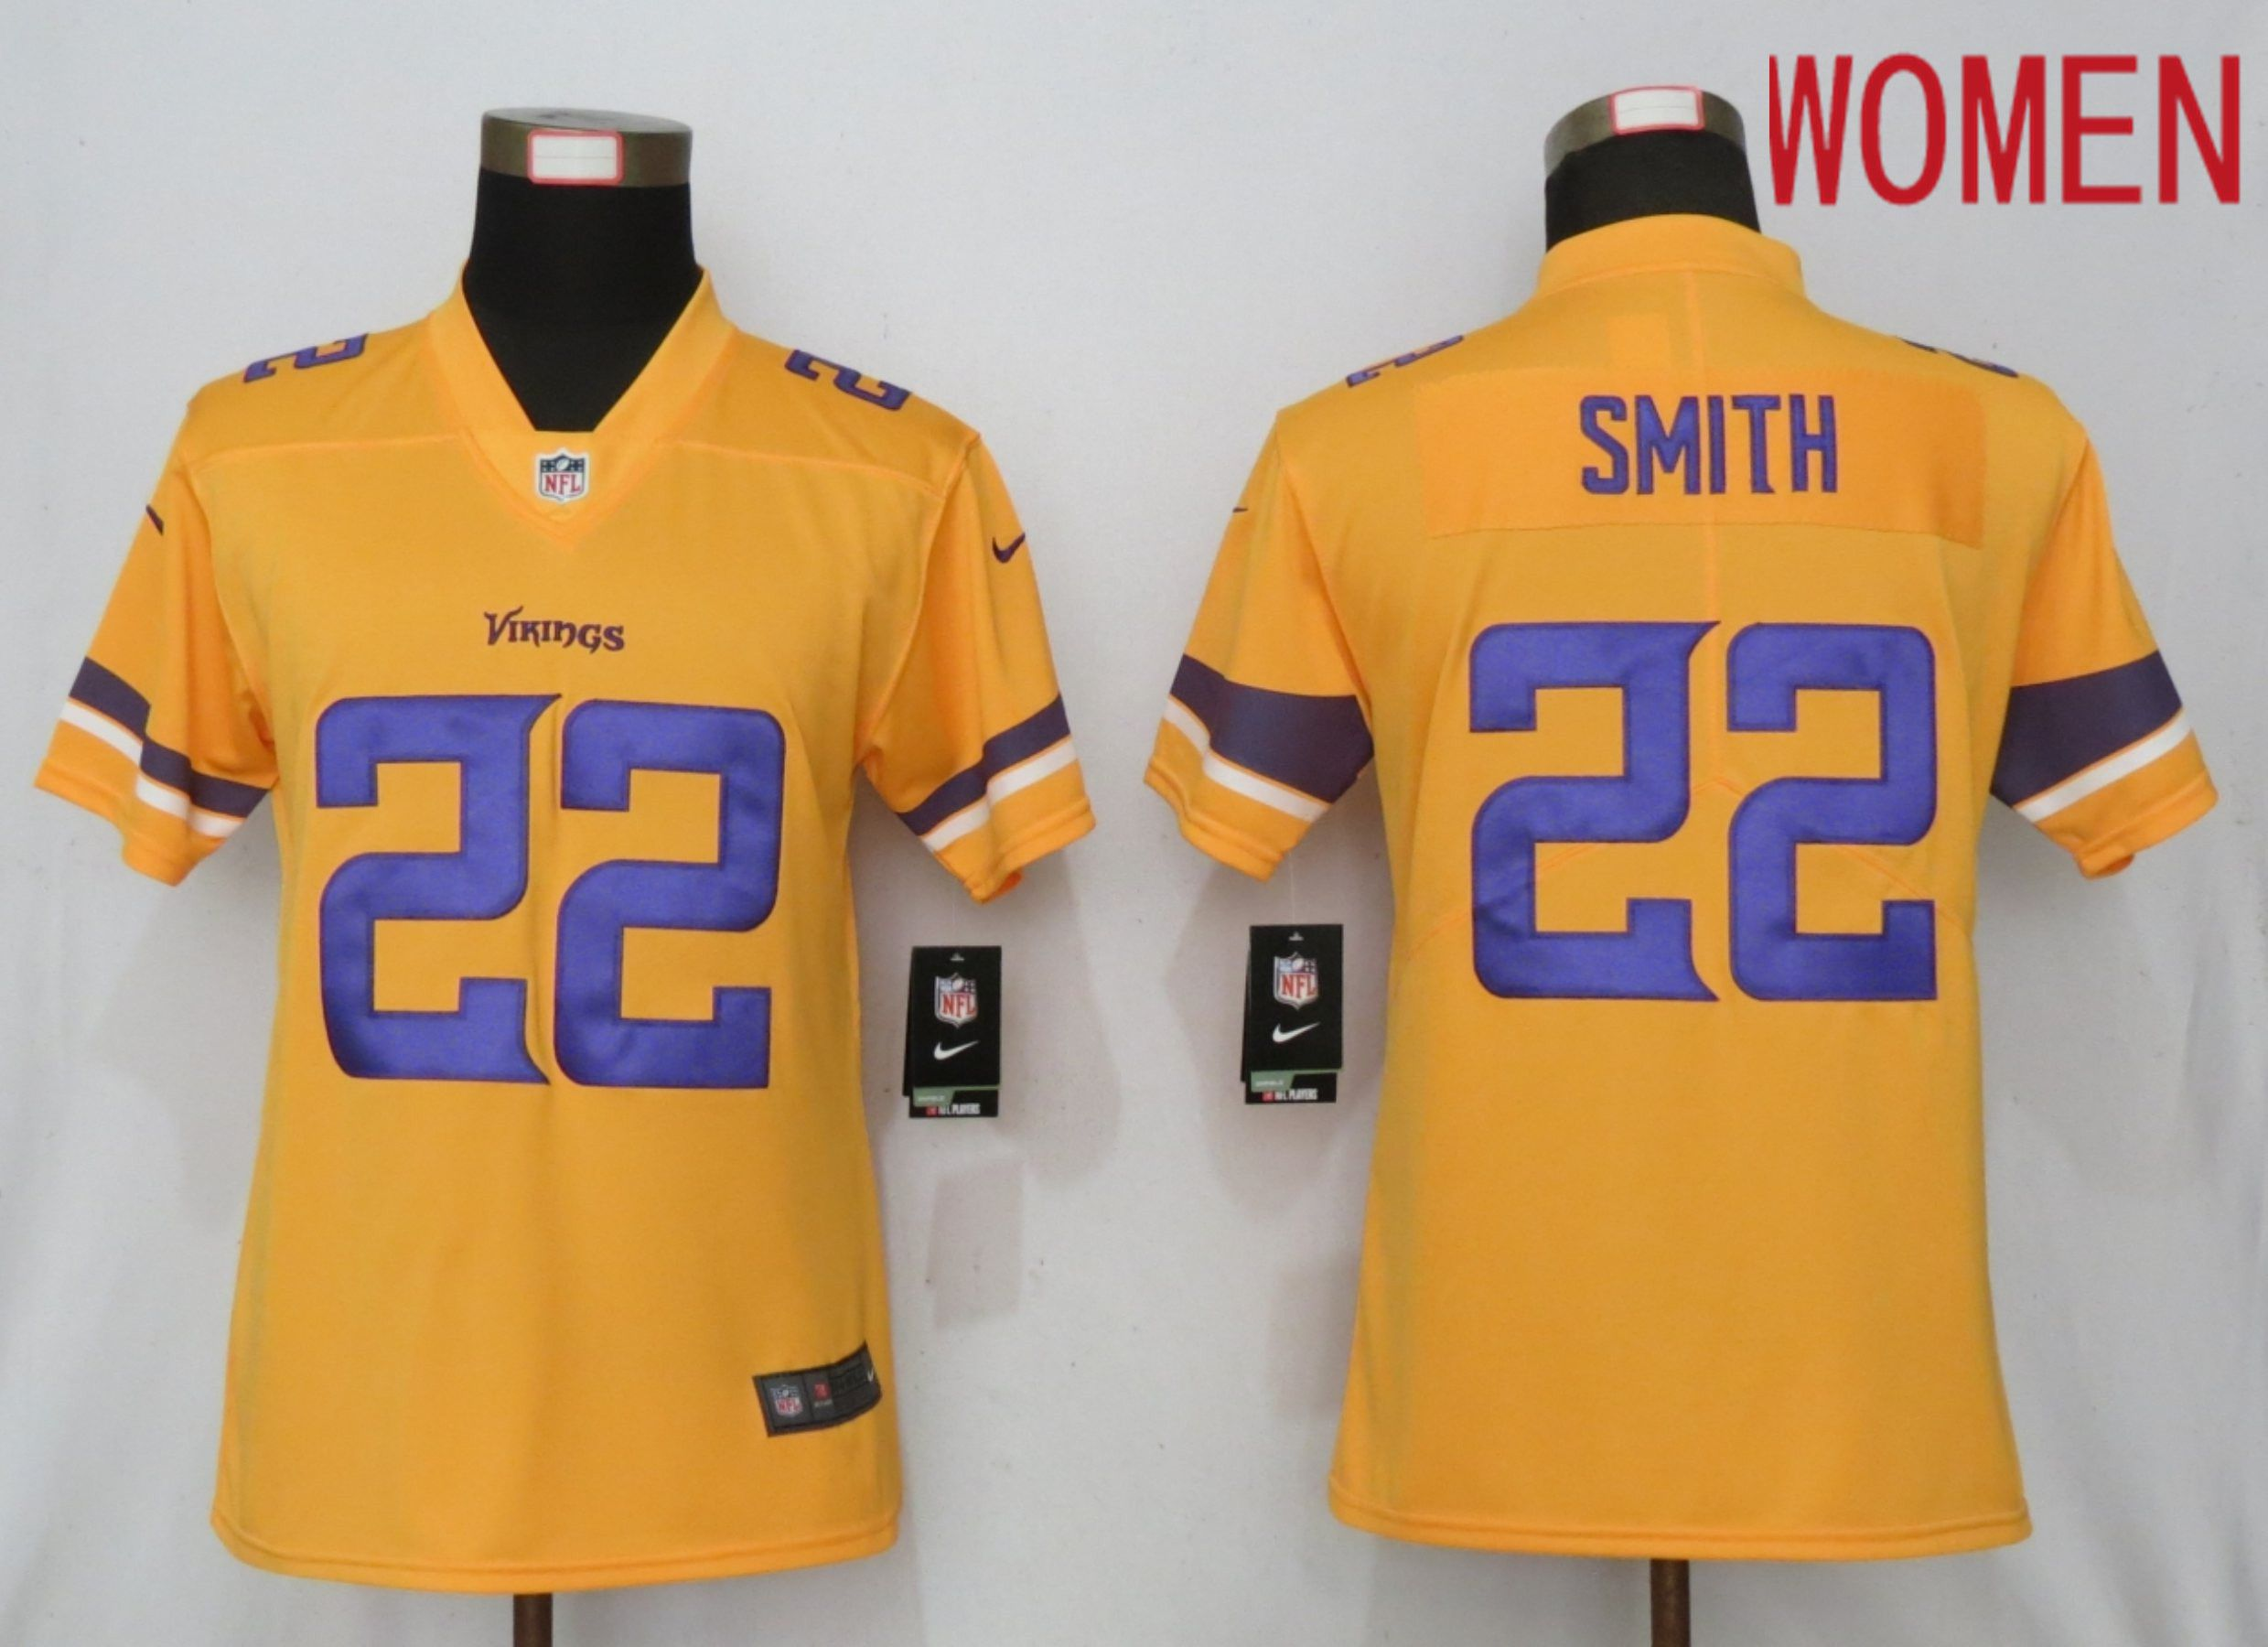 Women Minnesota Vikings 22 Smith 2019 Vapor Untouchable Nike Gold Inverted Elite Playe NFL Jerseys